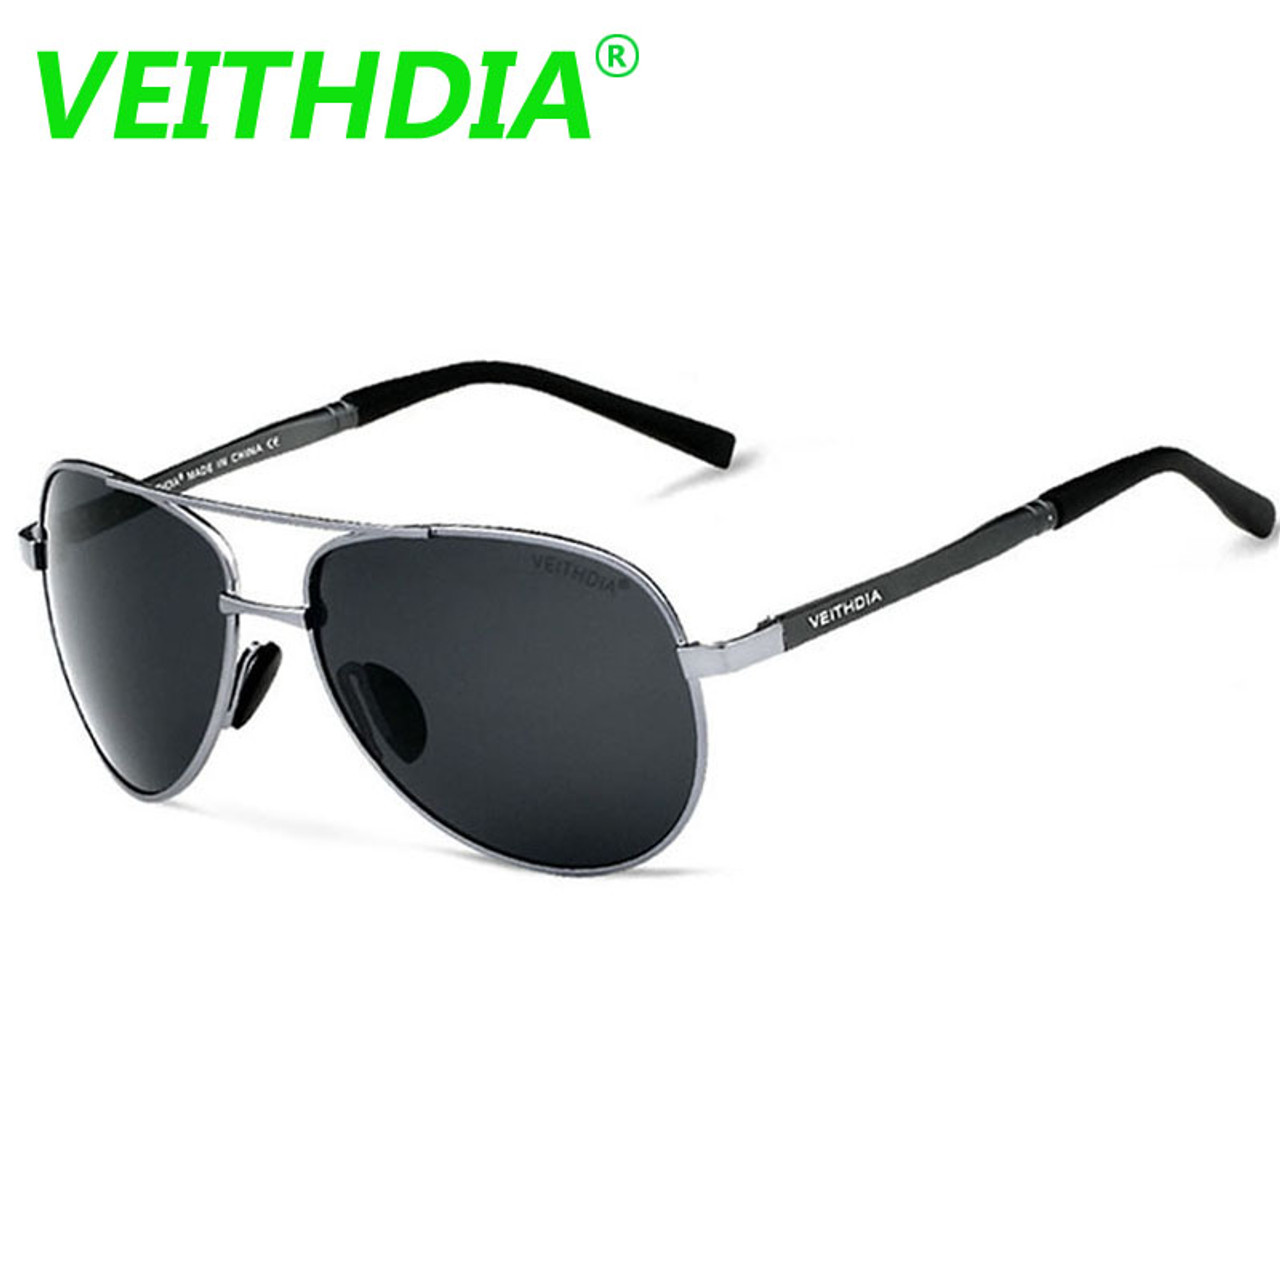 87b2e1f28b ... 2017 VEITHDIA UV400 Pilot Yurt Sun Glasses Men Polarized Sunglasses  Brand Logo Design Driving Glasses Goggles ...